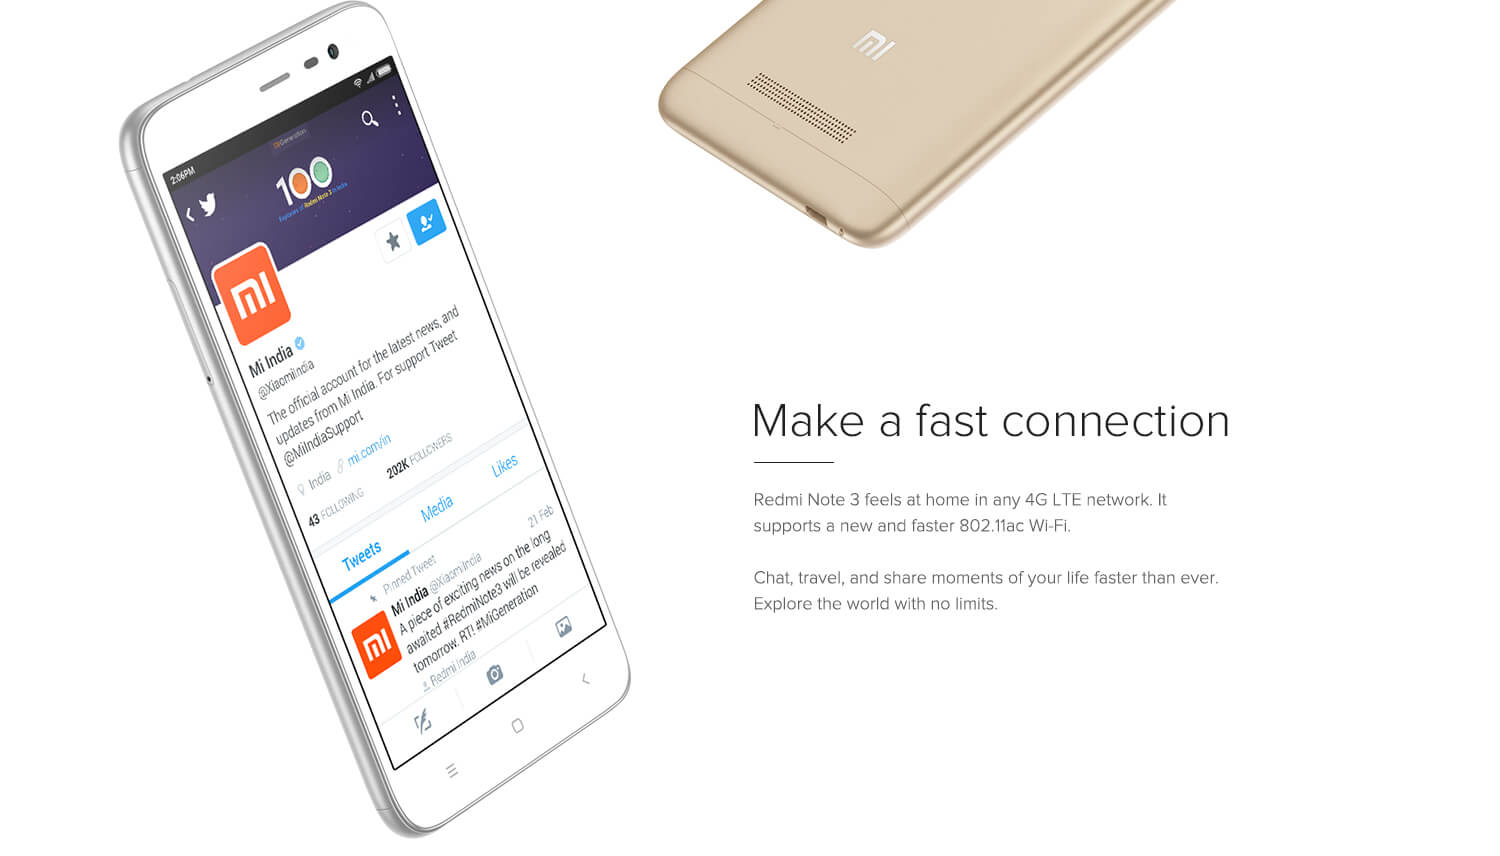 Redmi 4G network